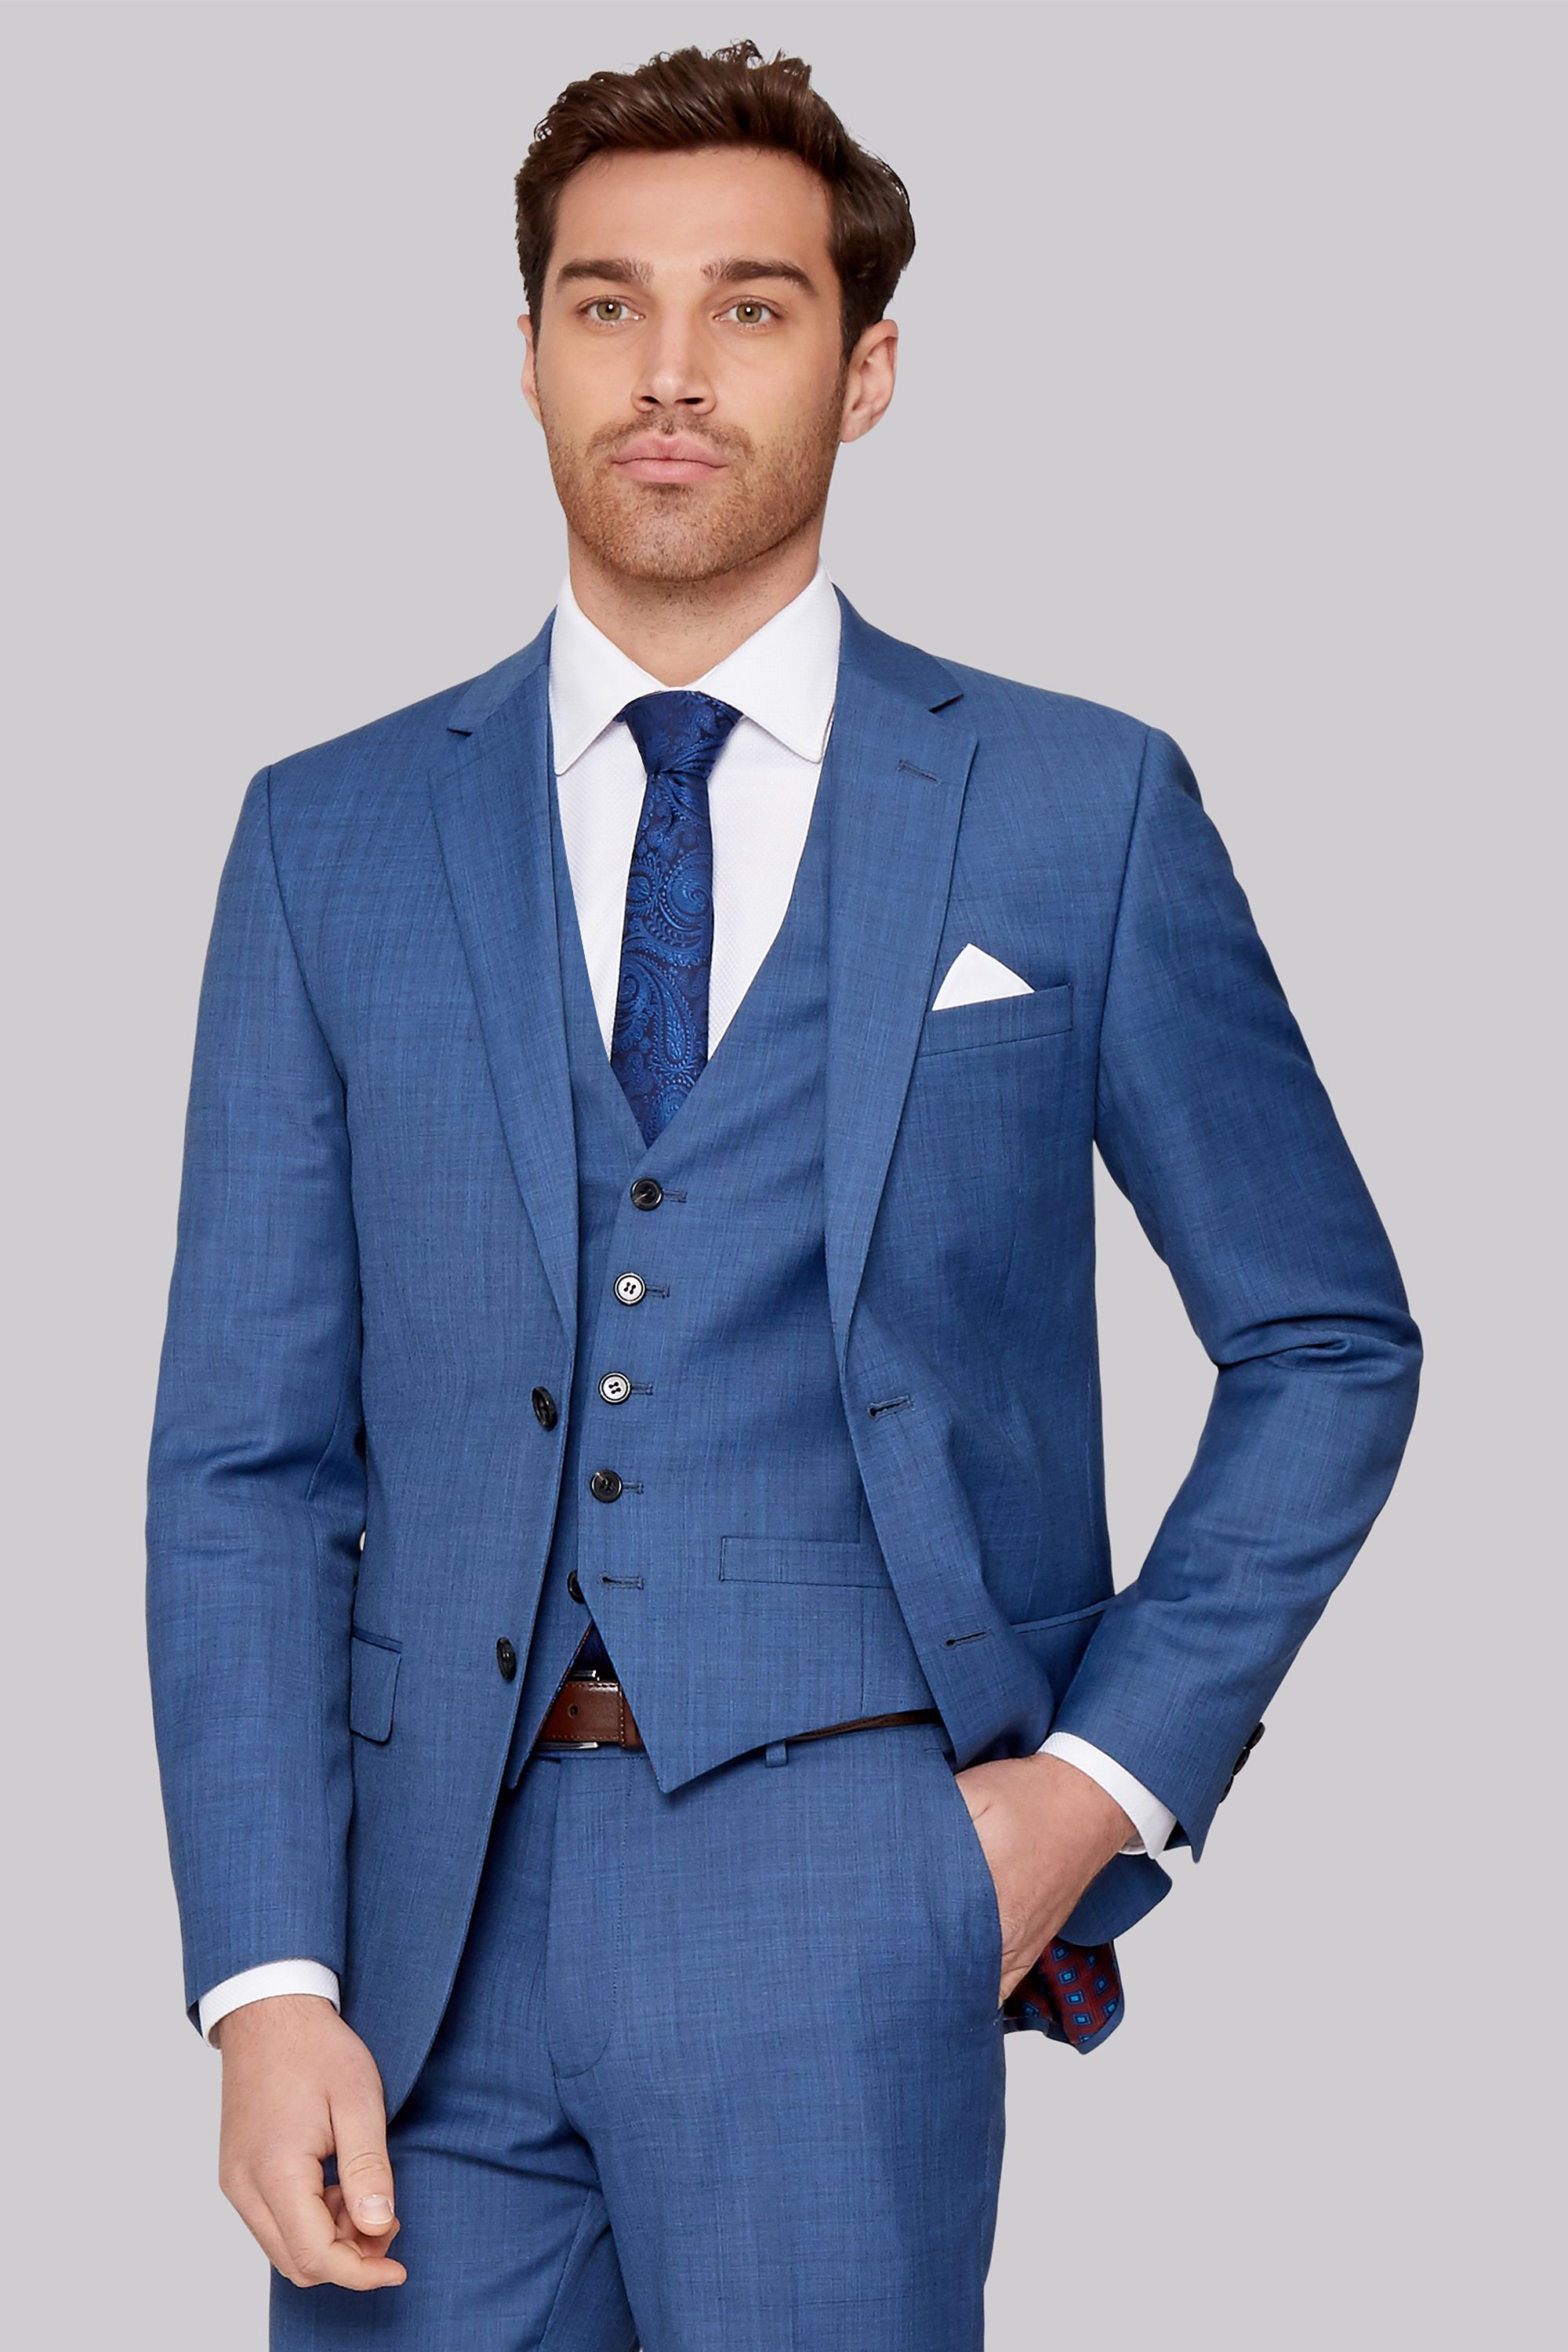 c34c90c8e6651 Give your suiting collection a continental twist with this French blue  sharkskin suit Vibrant and beautifully tailored